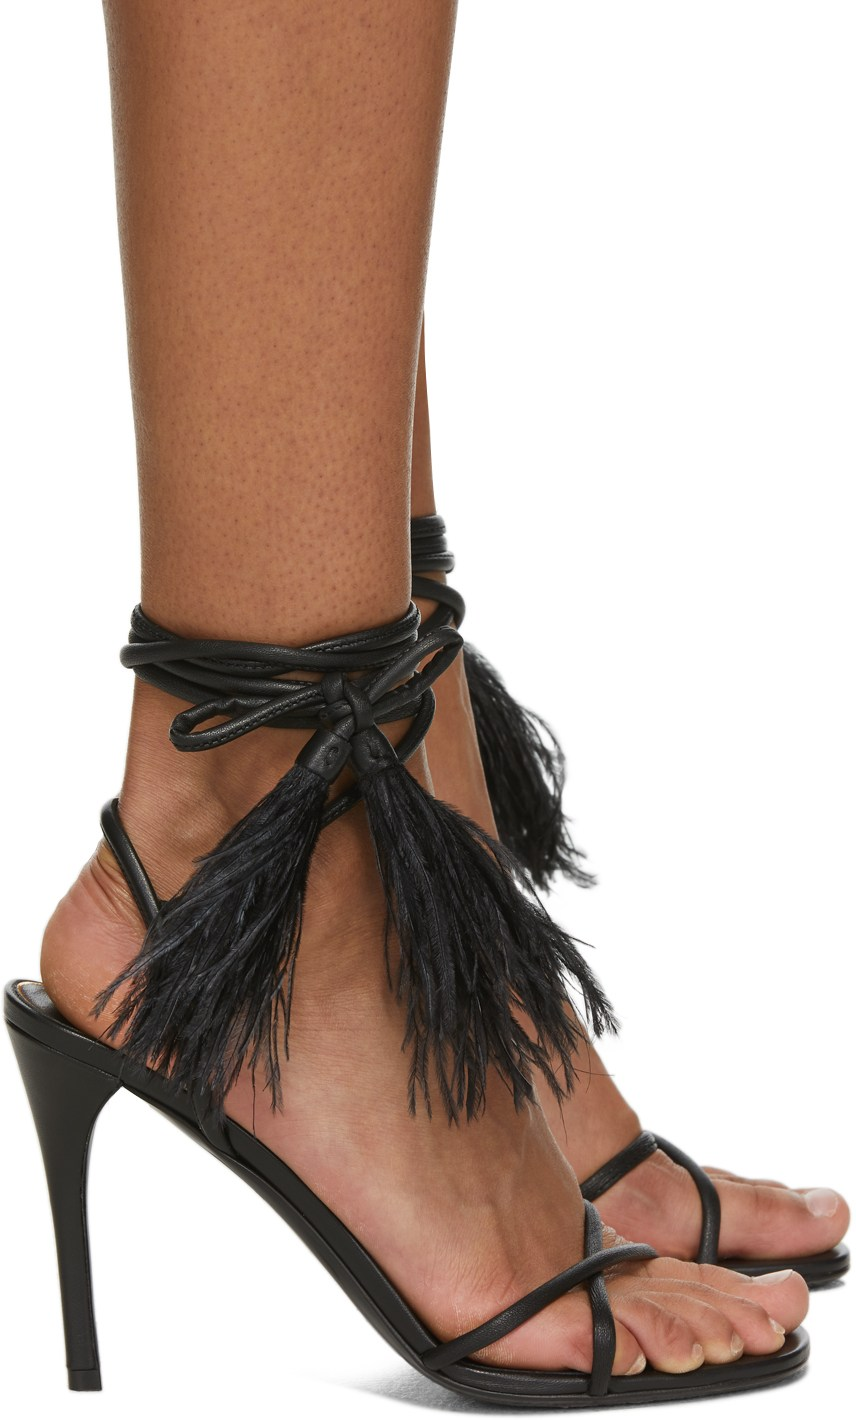 Crafted from leather, these black Upflair sandals from Valentino Garavani are decorated with tassel detailing